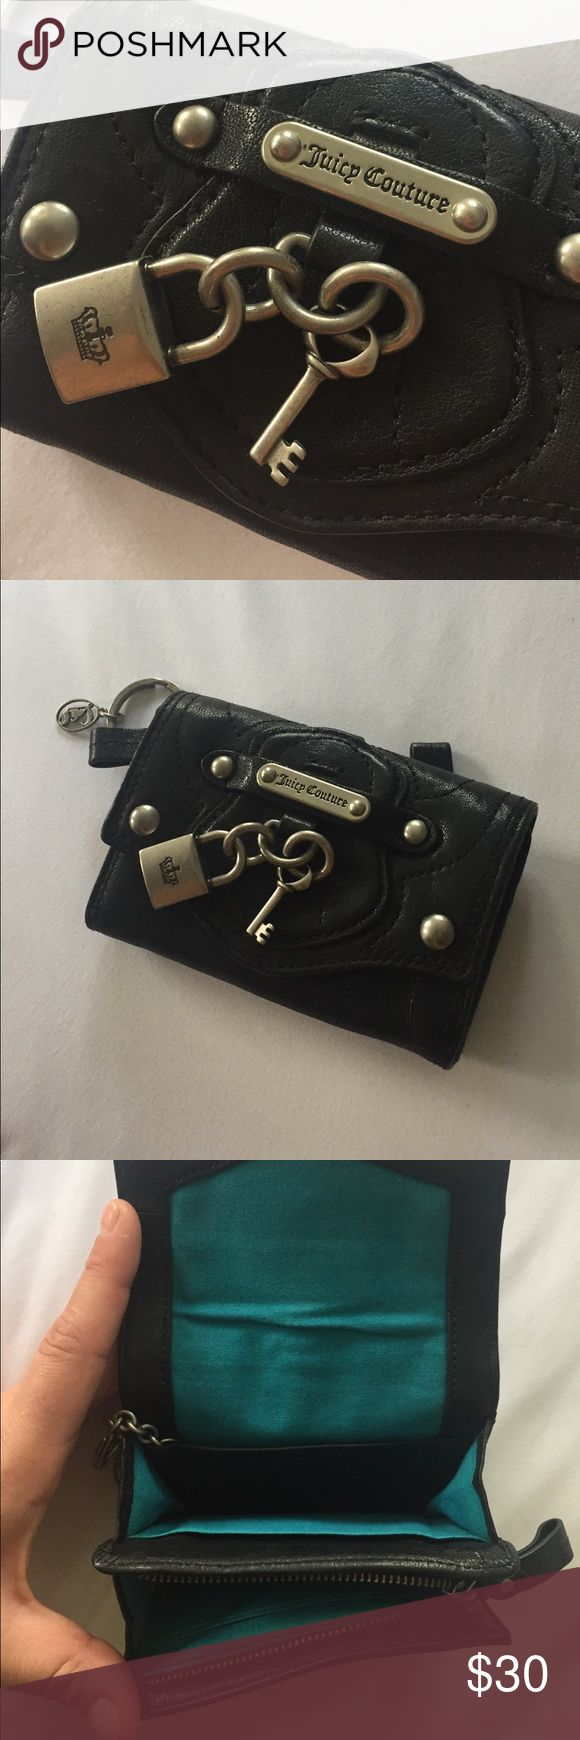 Juicy Couture Charm Wallet Used once, excellent condition. Optional keychain Wallet. Multiple compartments Juicy Couture Bags Wallets